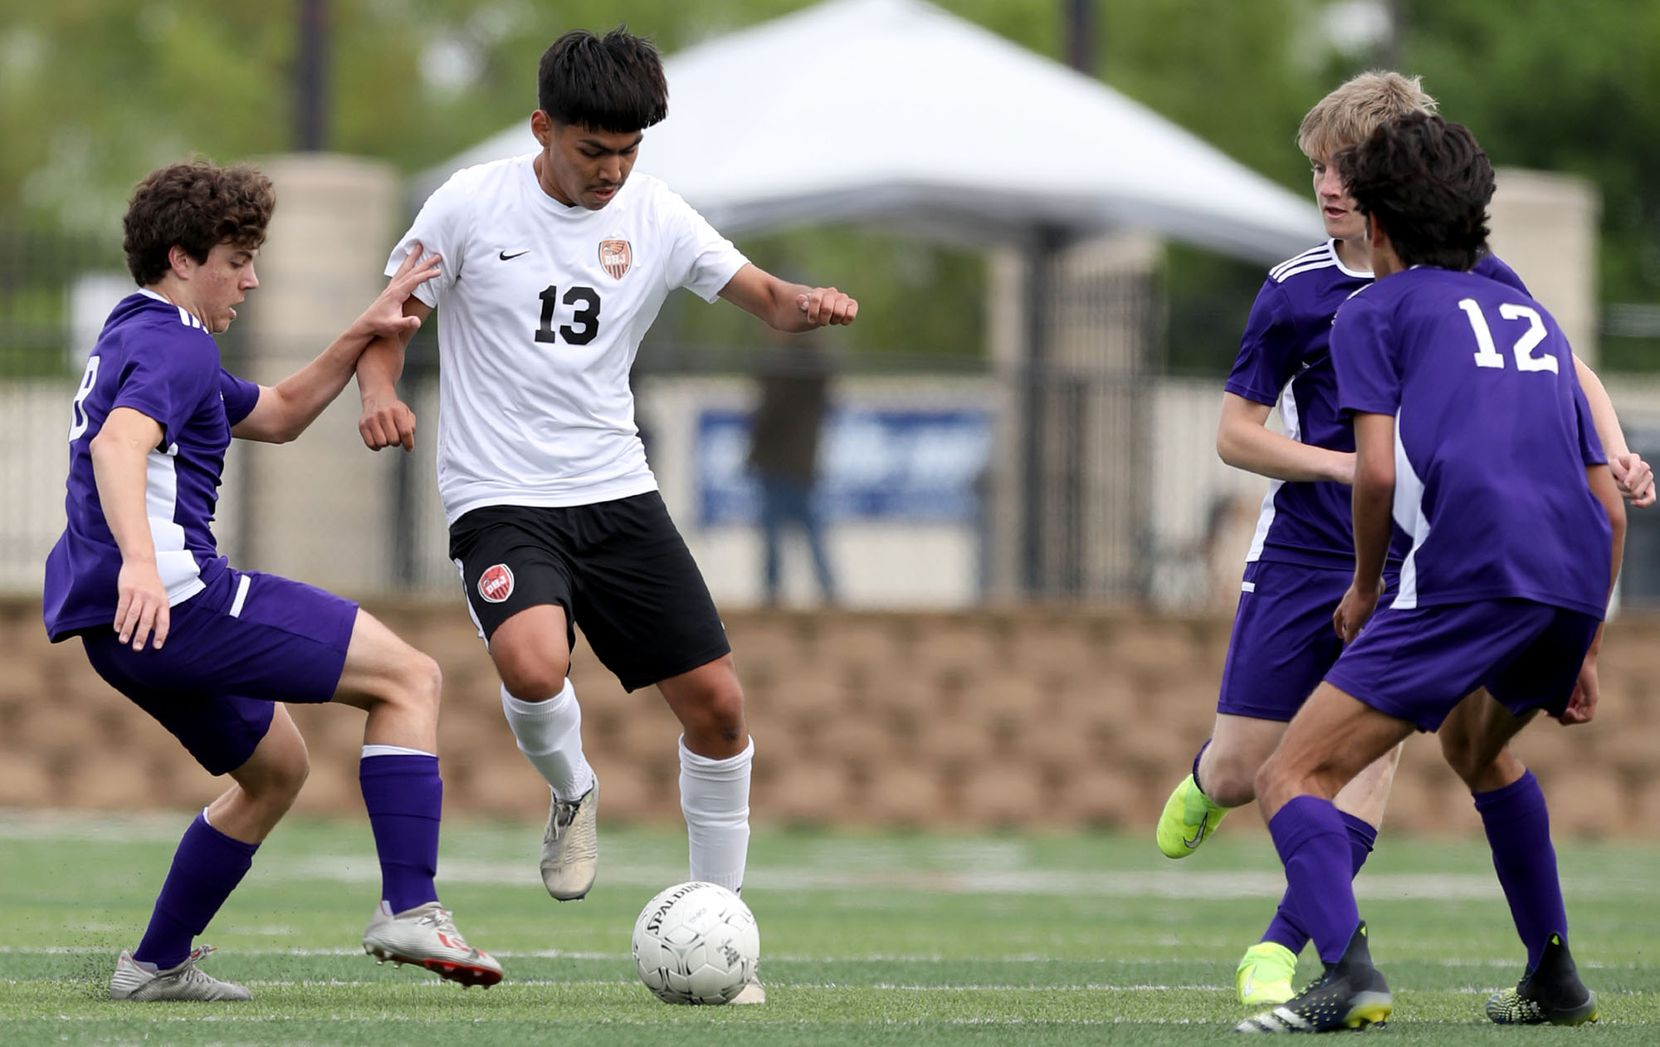 Fort Worth Diamond Hill-Jarvis' Edward Zuniga (13) looks for room around Boerne's Brett Hettie (18), Gustav Erfurt (6), and Juan Castro (12) during their UIL 4A boys State championship soccer game at Birkelbach Field on April 17, 2021 in Georgetown, Texas. (Thao Nguyen/Special Contributor)